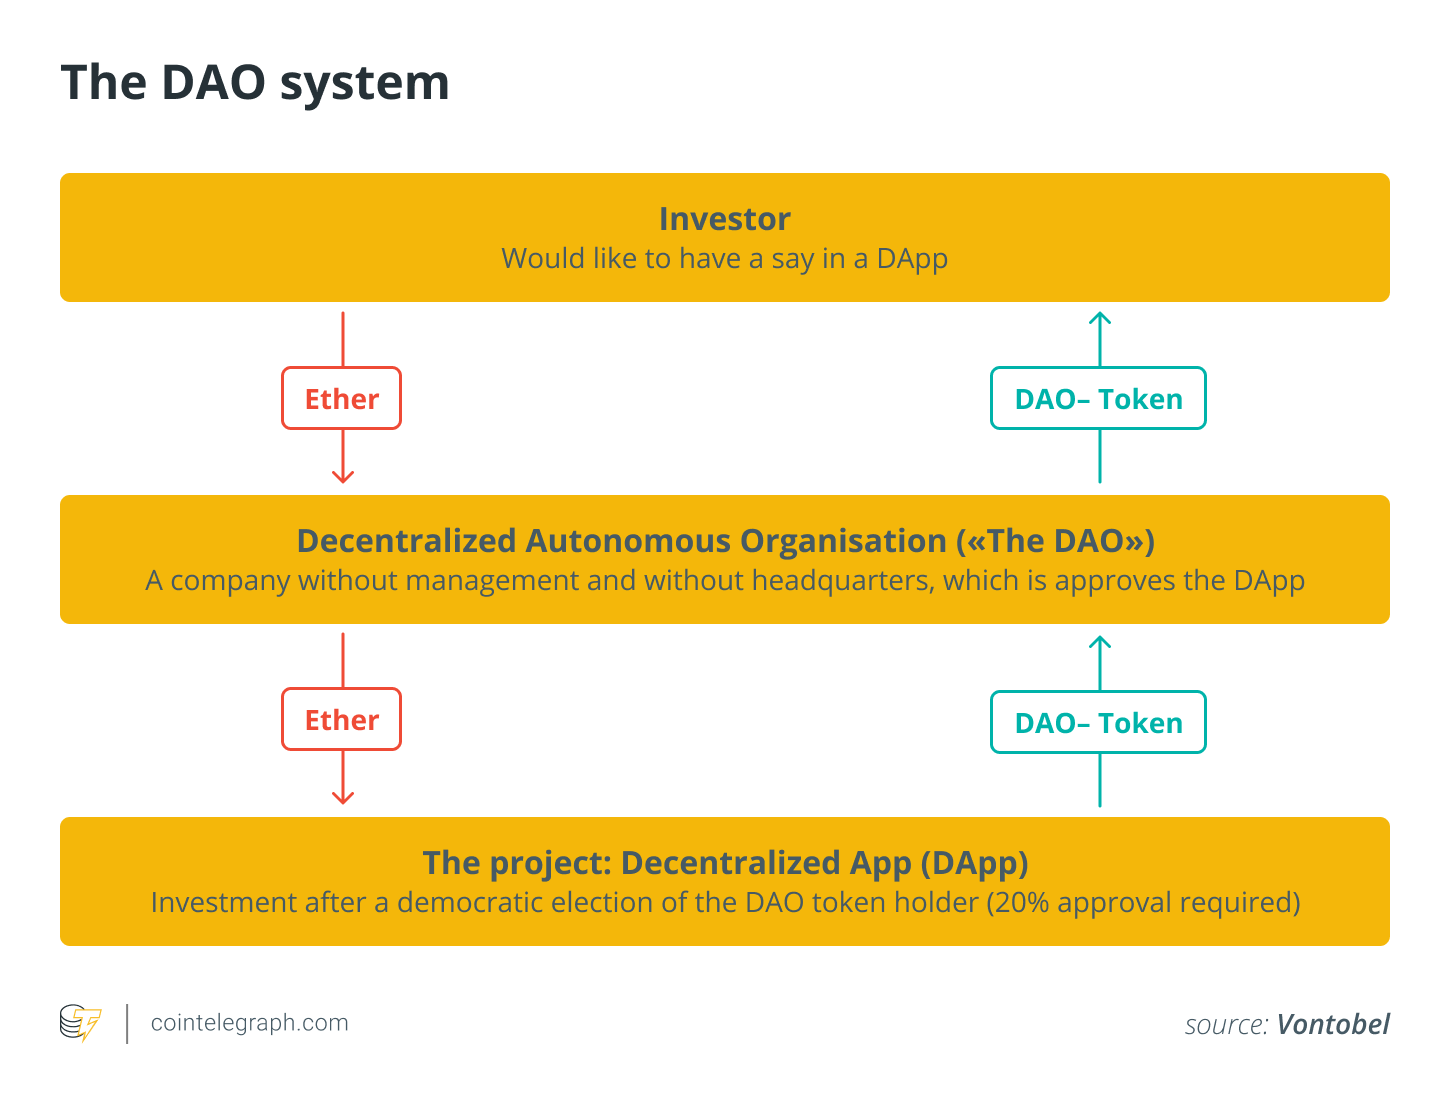 The DAO system